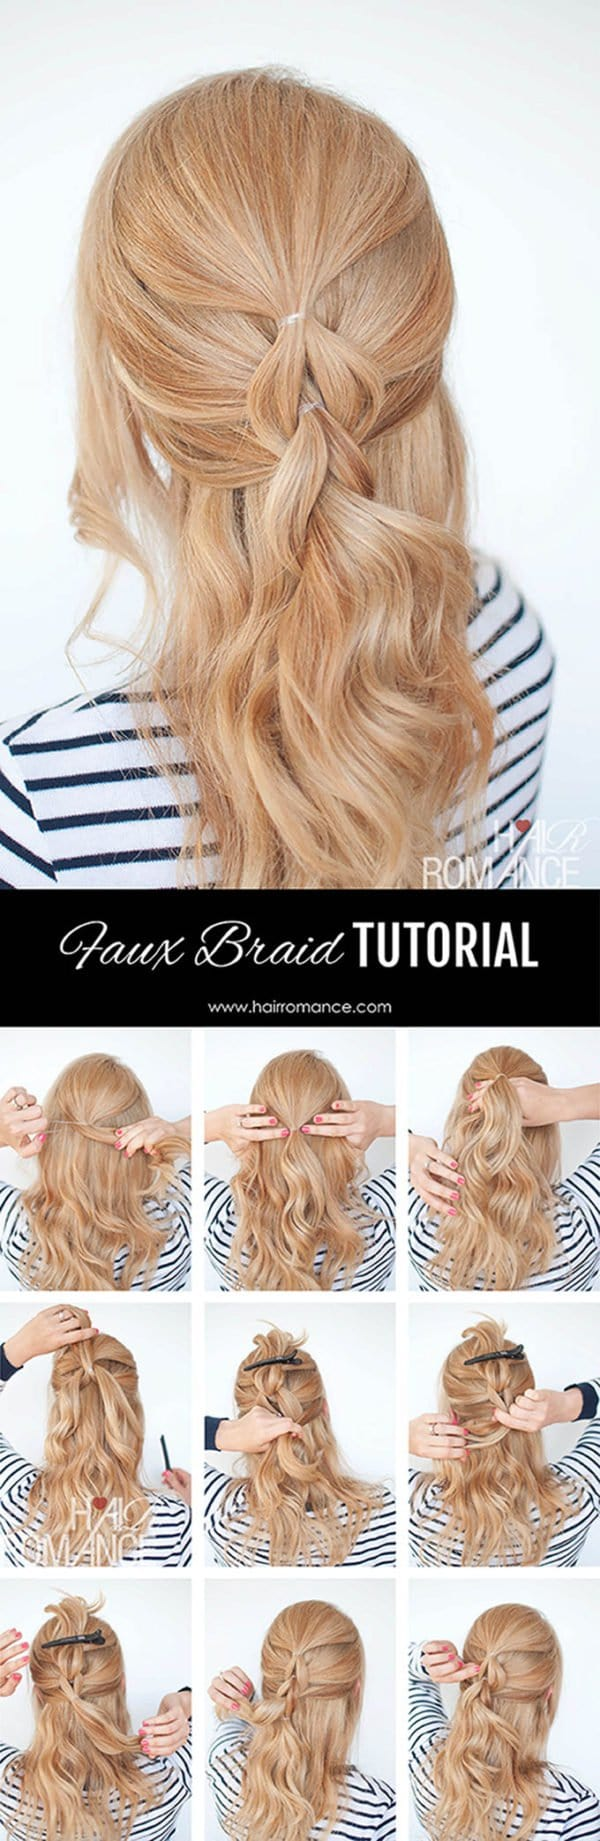 10 Elegant Hairstyles Tutorials That You Will Adore This Summer